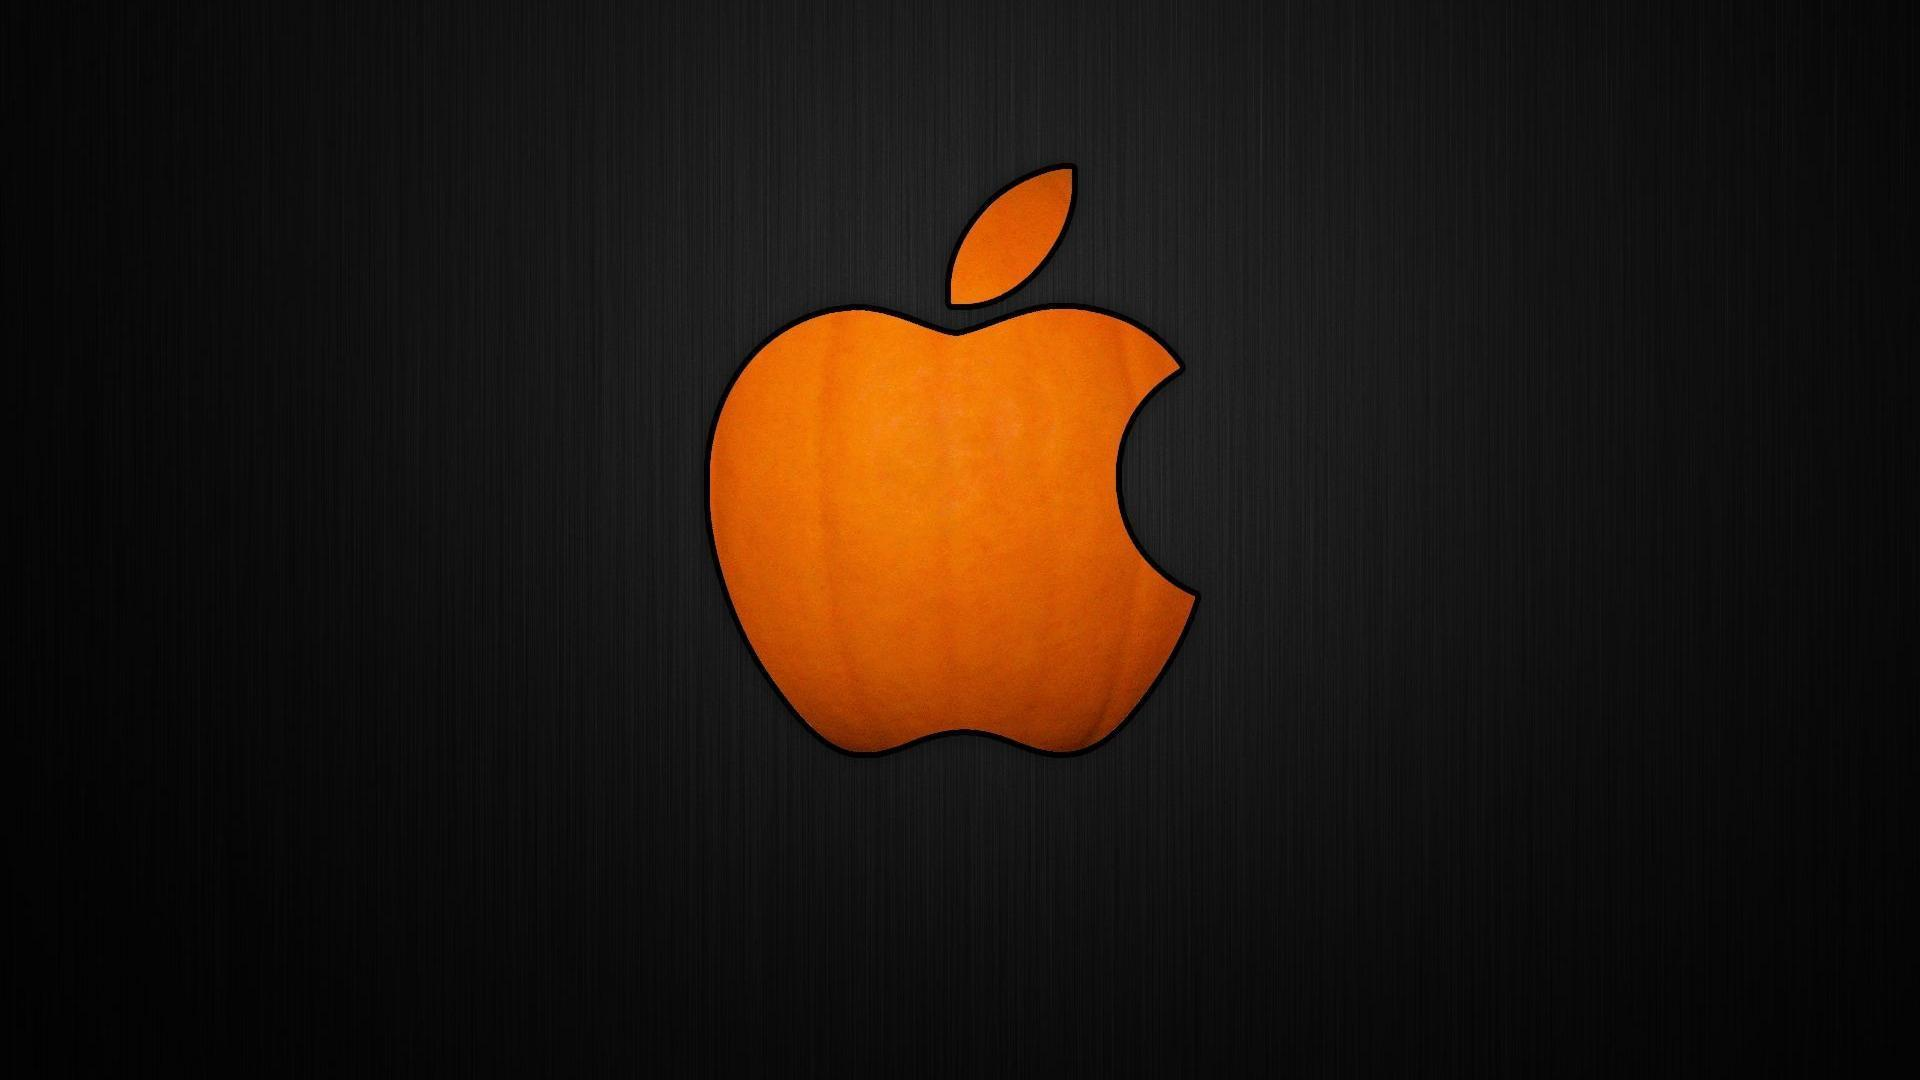 Cool Pictures Apple Logo HD Wallpaper of Logo - hdwallpaper2013.com